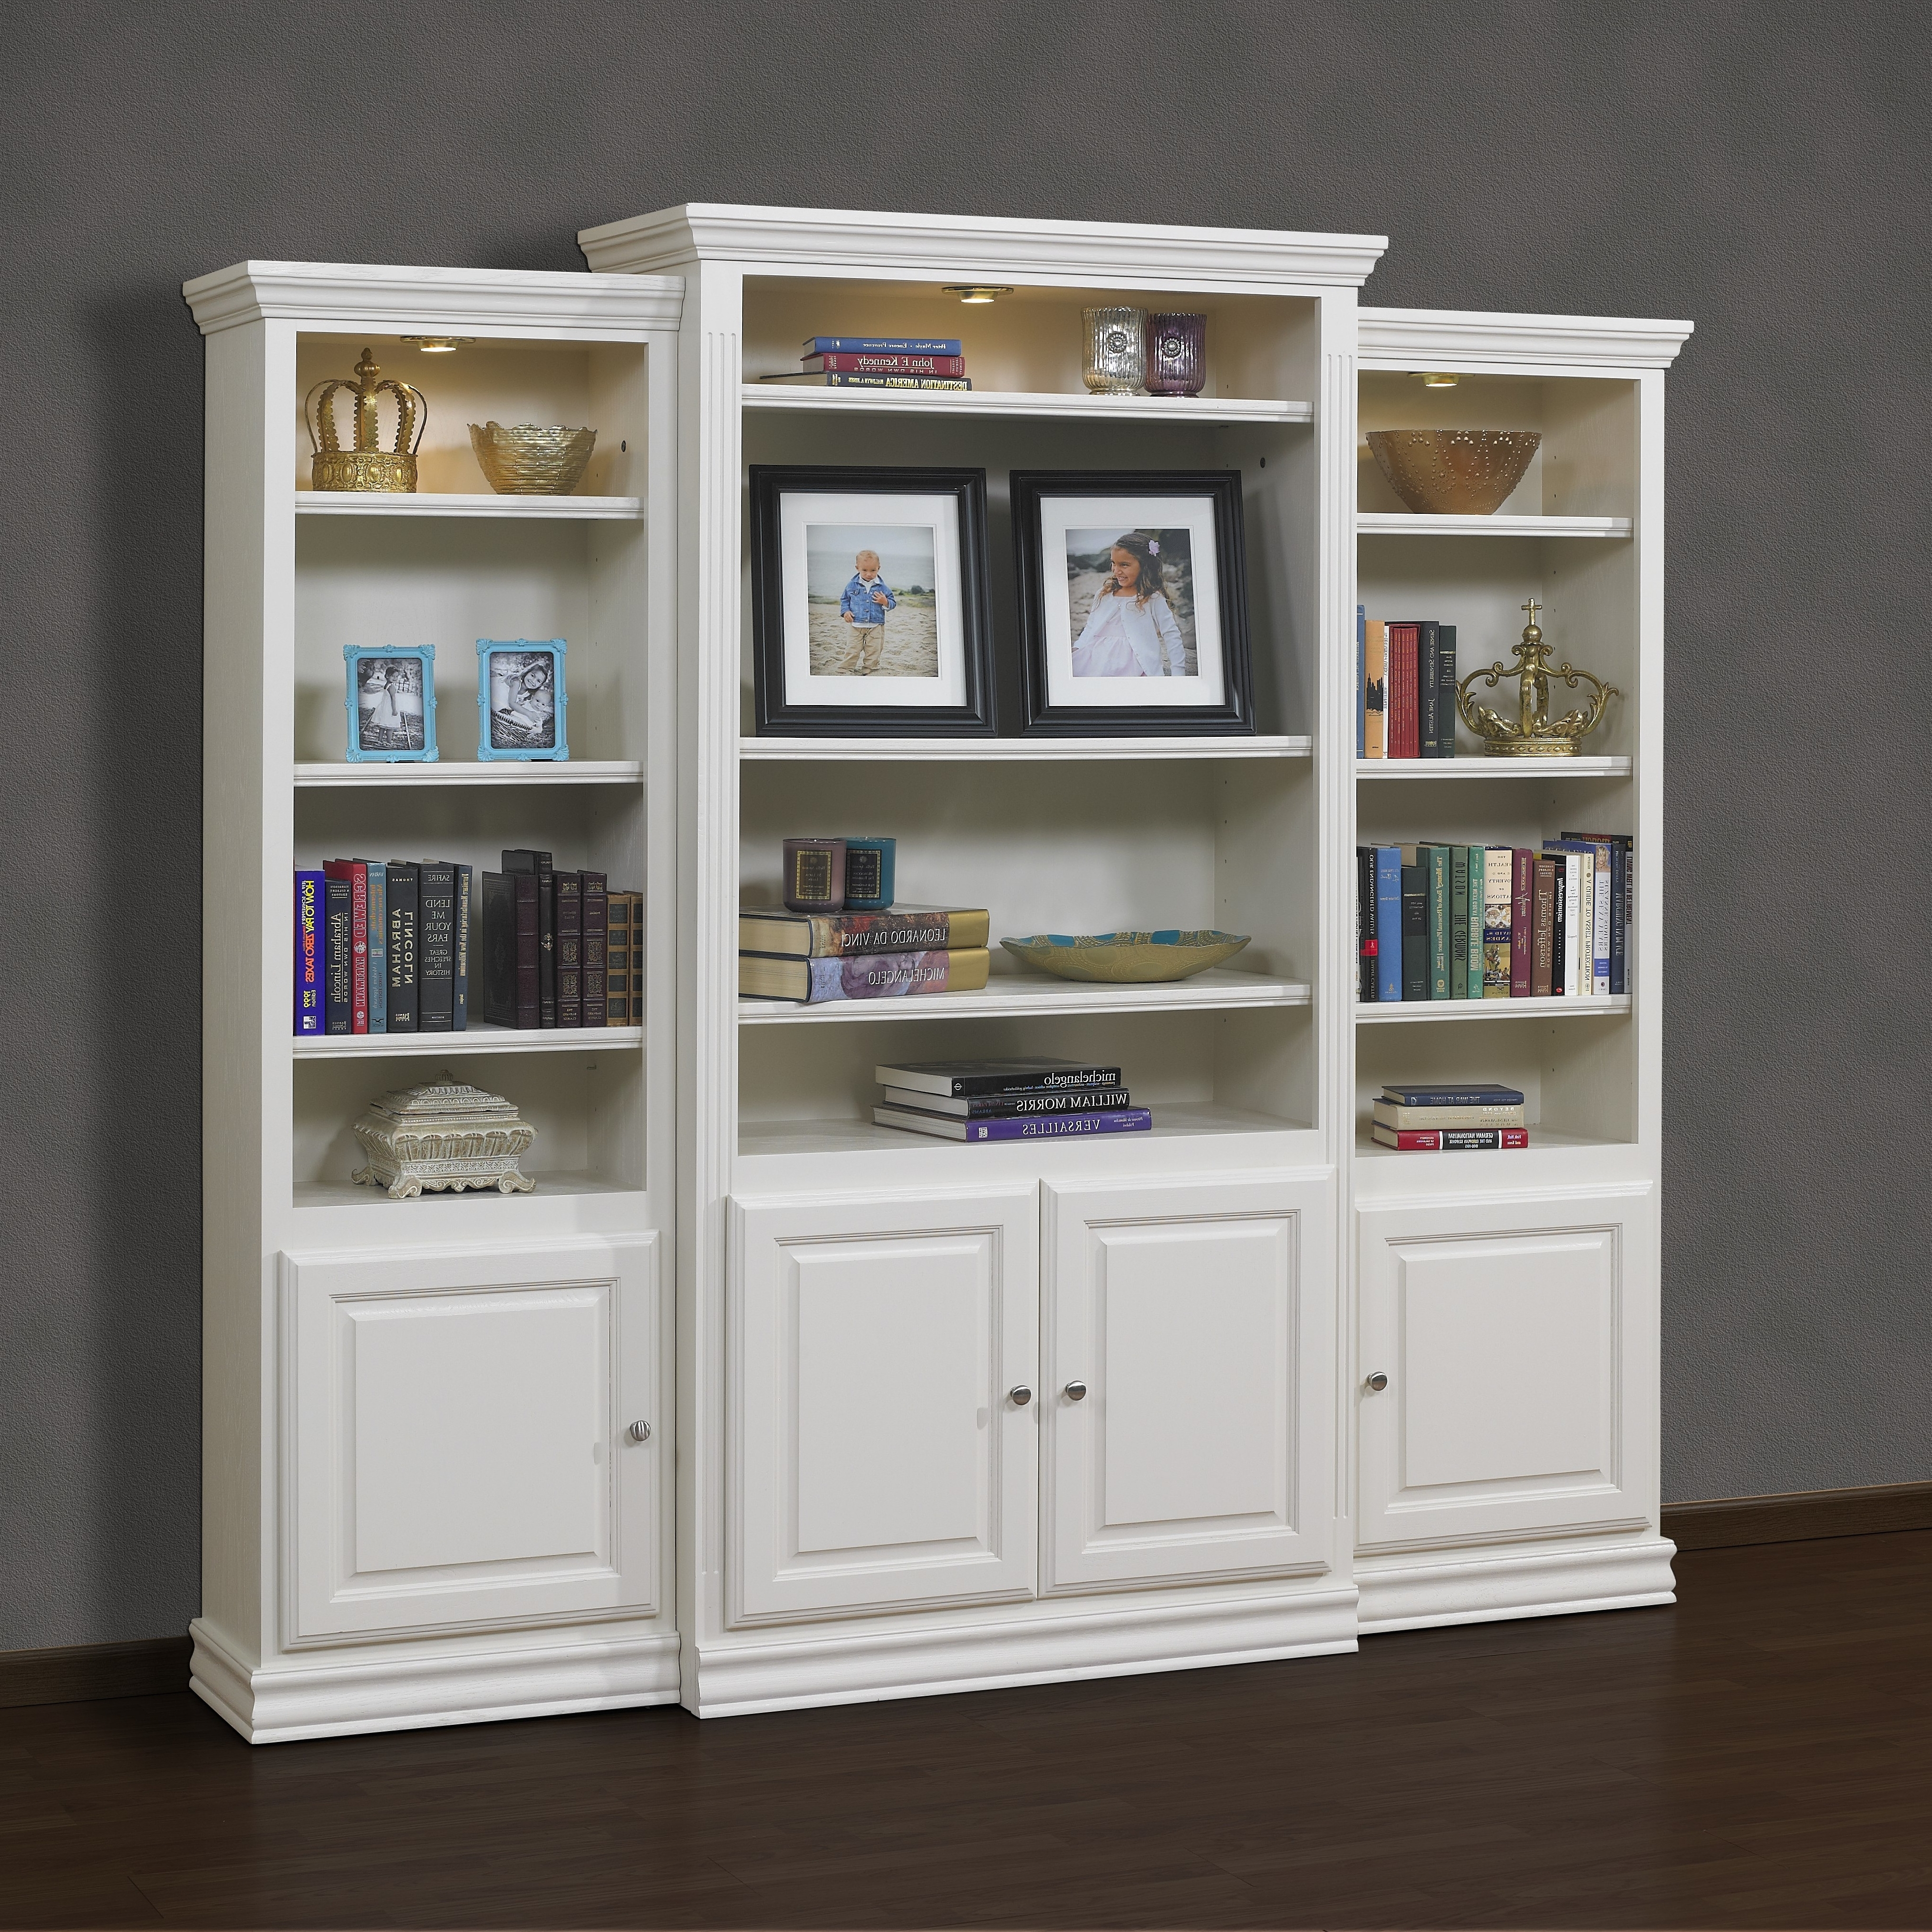 Widely Used Furniture White Wooden Tall Book Cabinet Using Glass Door And Intended For Cabinet Bookcases (View 4 of 15)